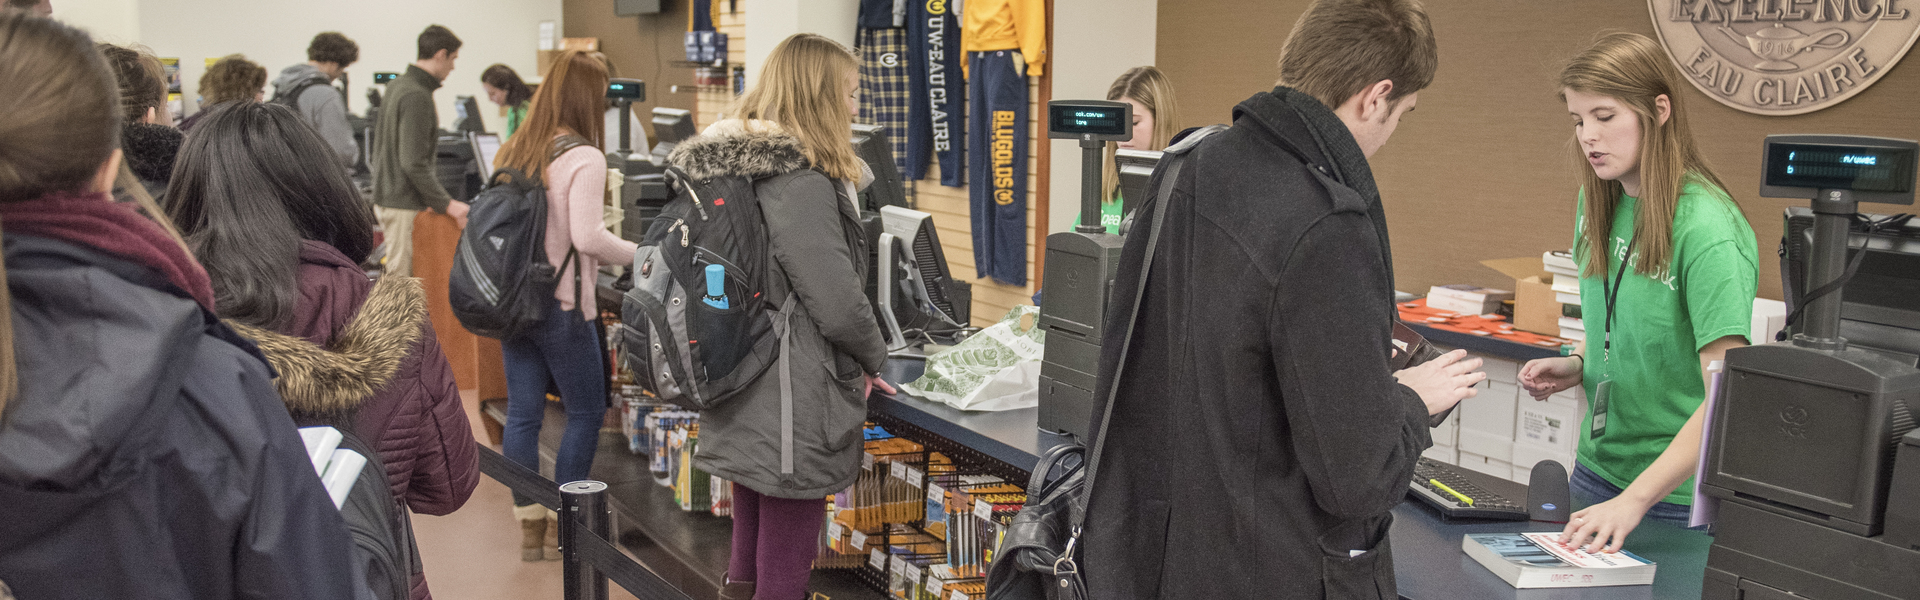 Students flock to the campus bookstore on their first day back.